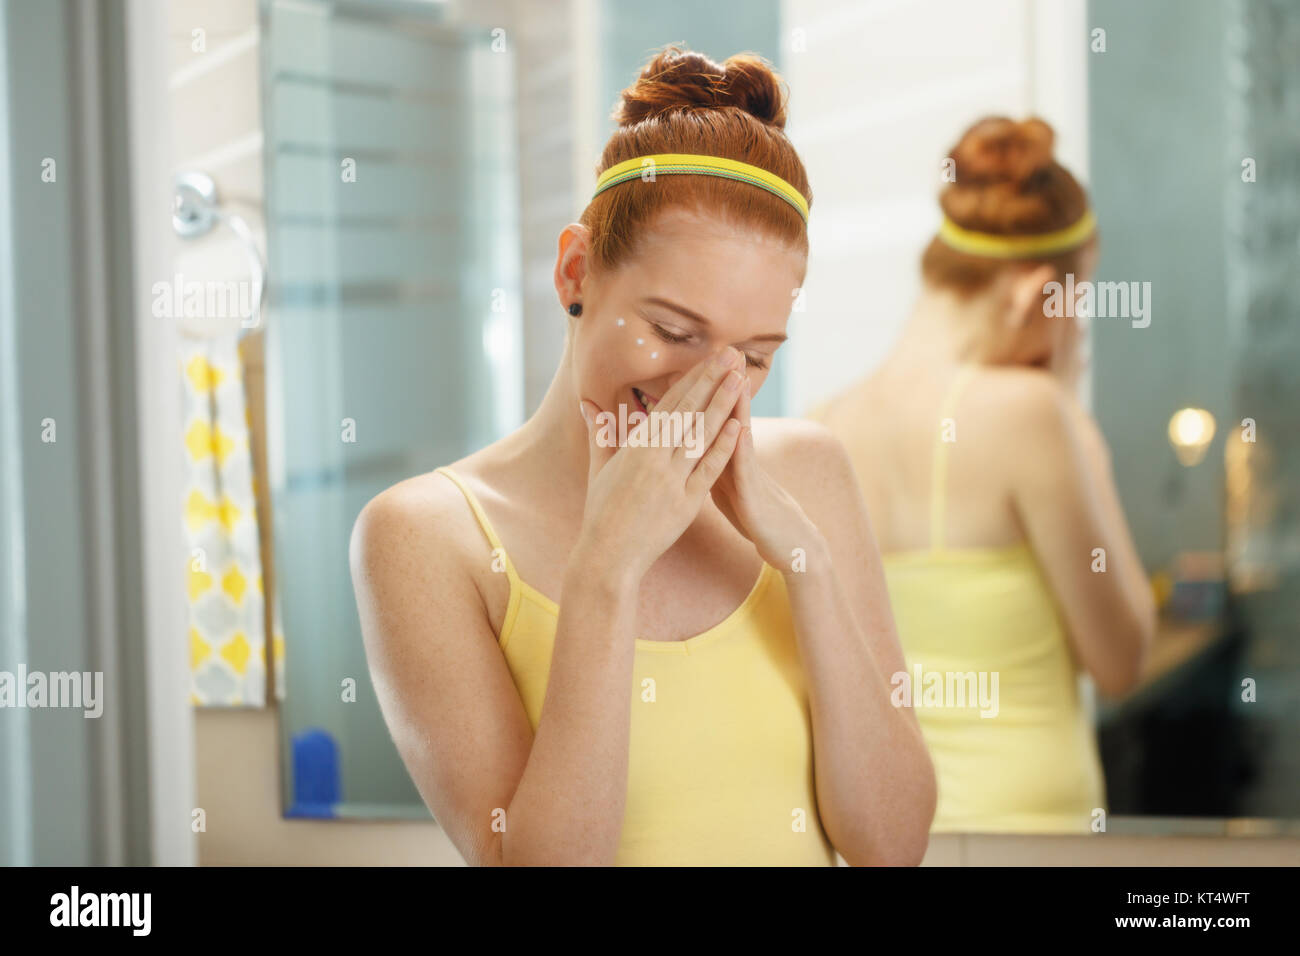 Redhead girl applying beauty cream in home bathroom at morning. Young woman taking care of her skin, looking and - Stock Image